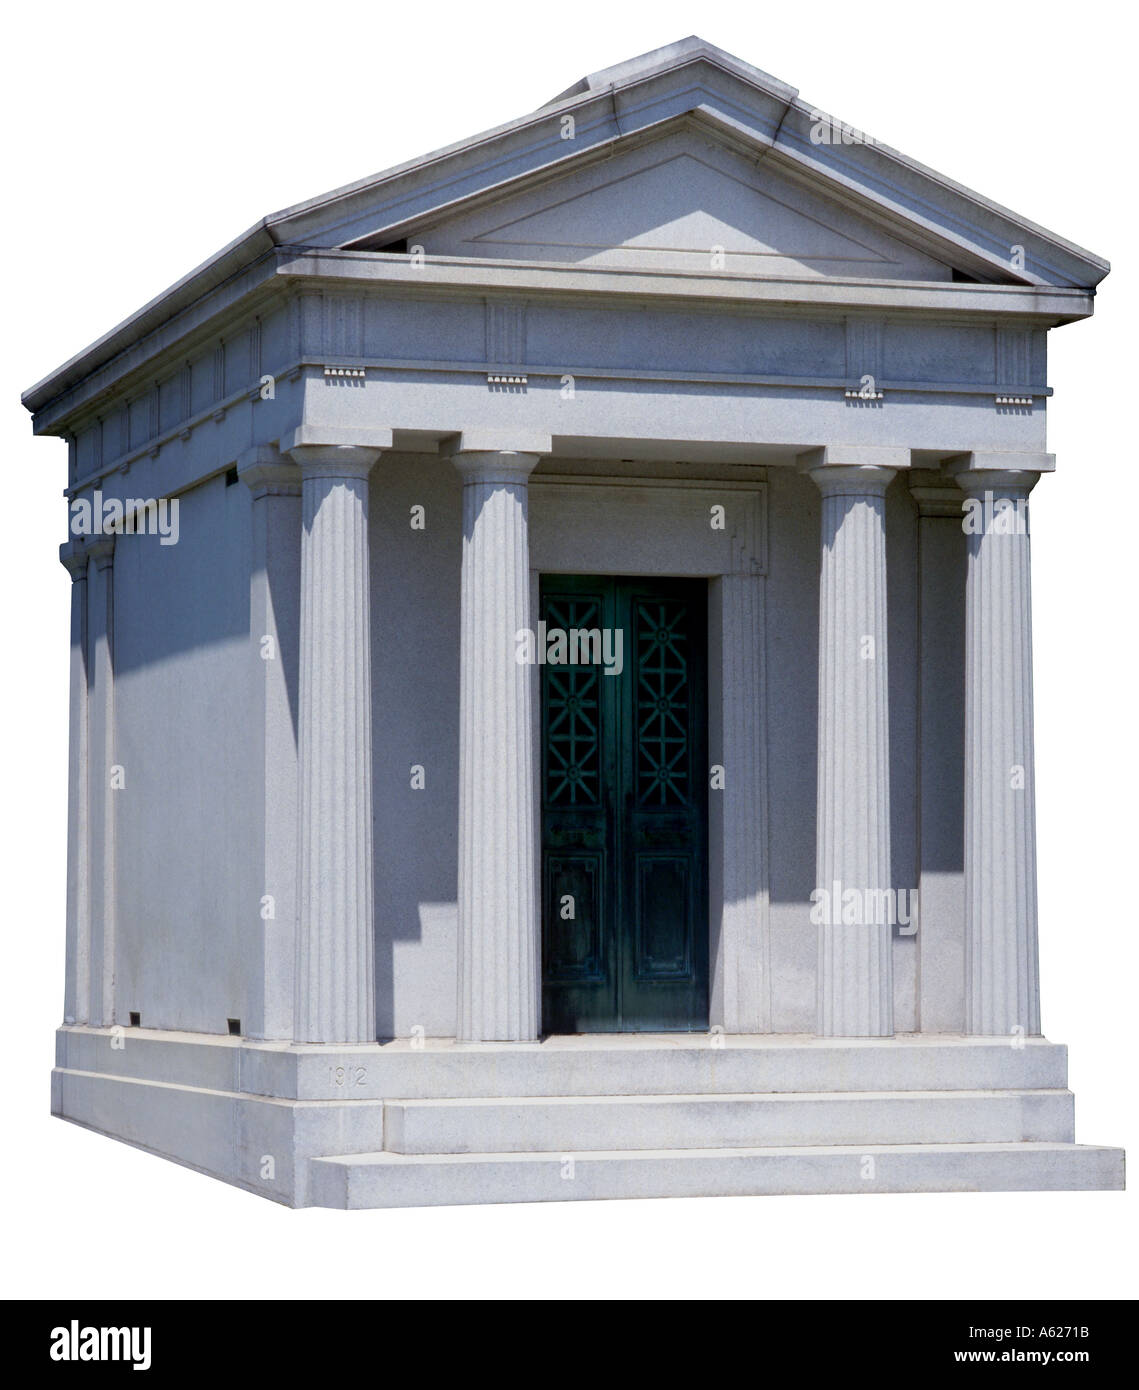 Greek building with columns - Stock Image